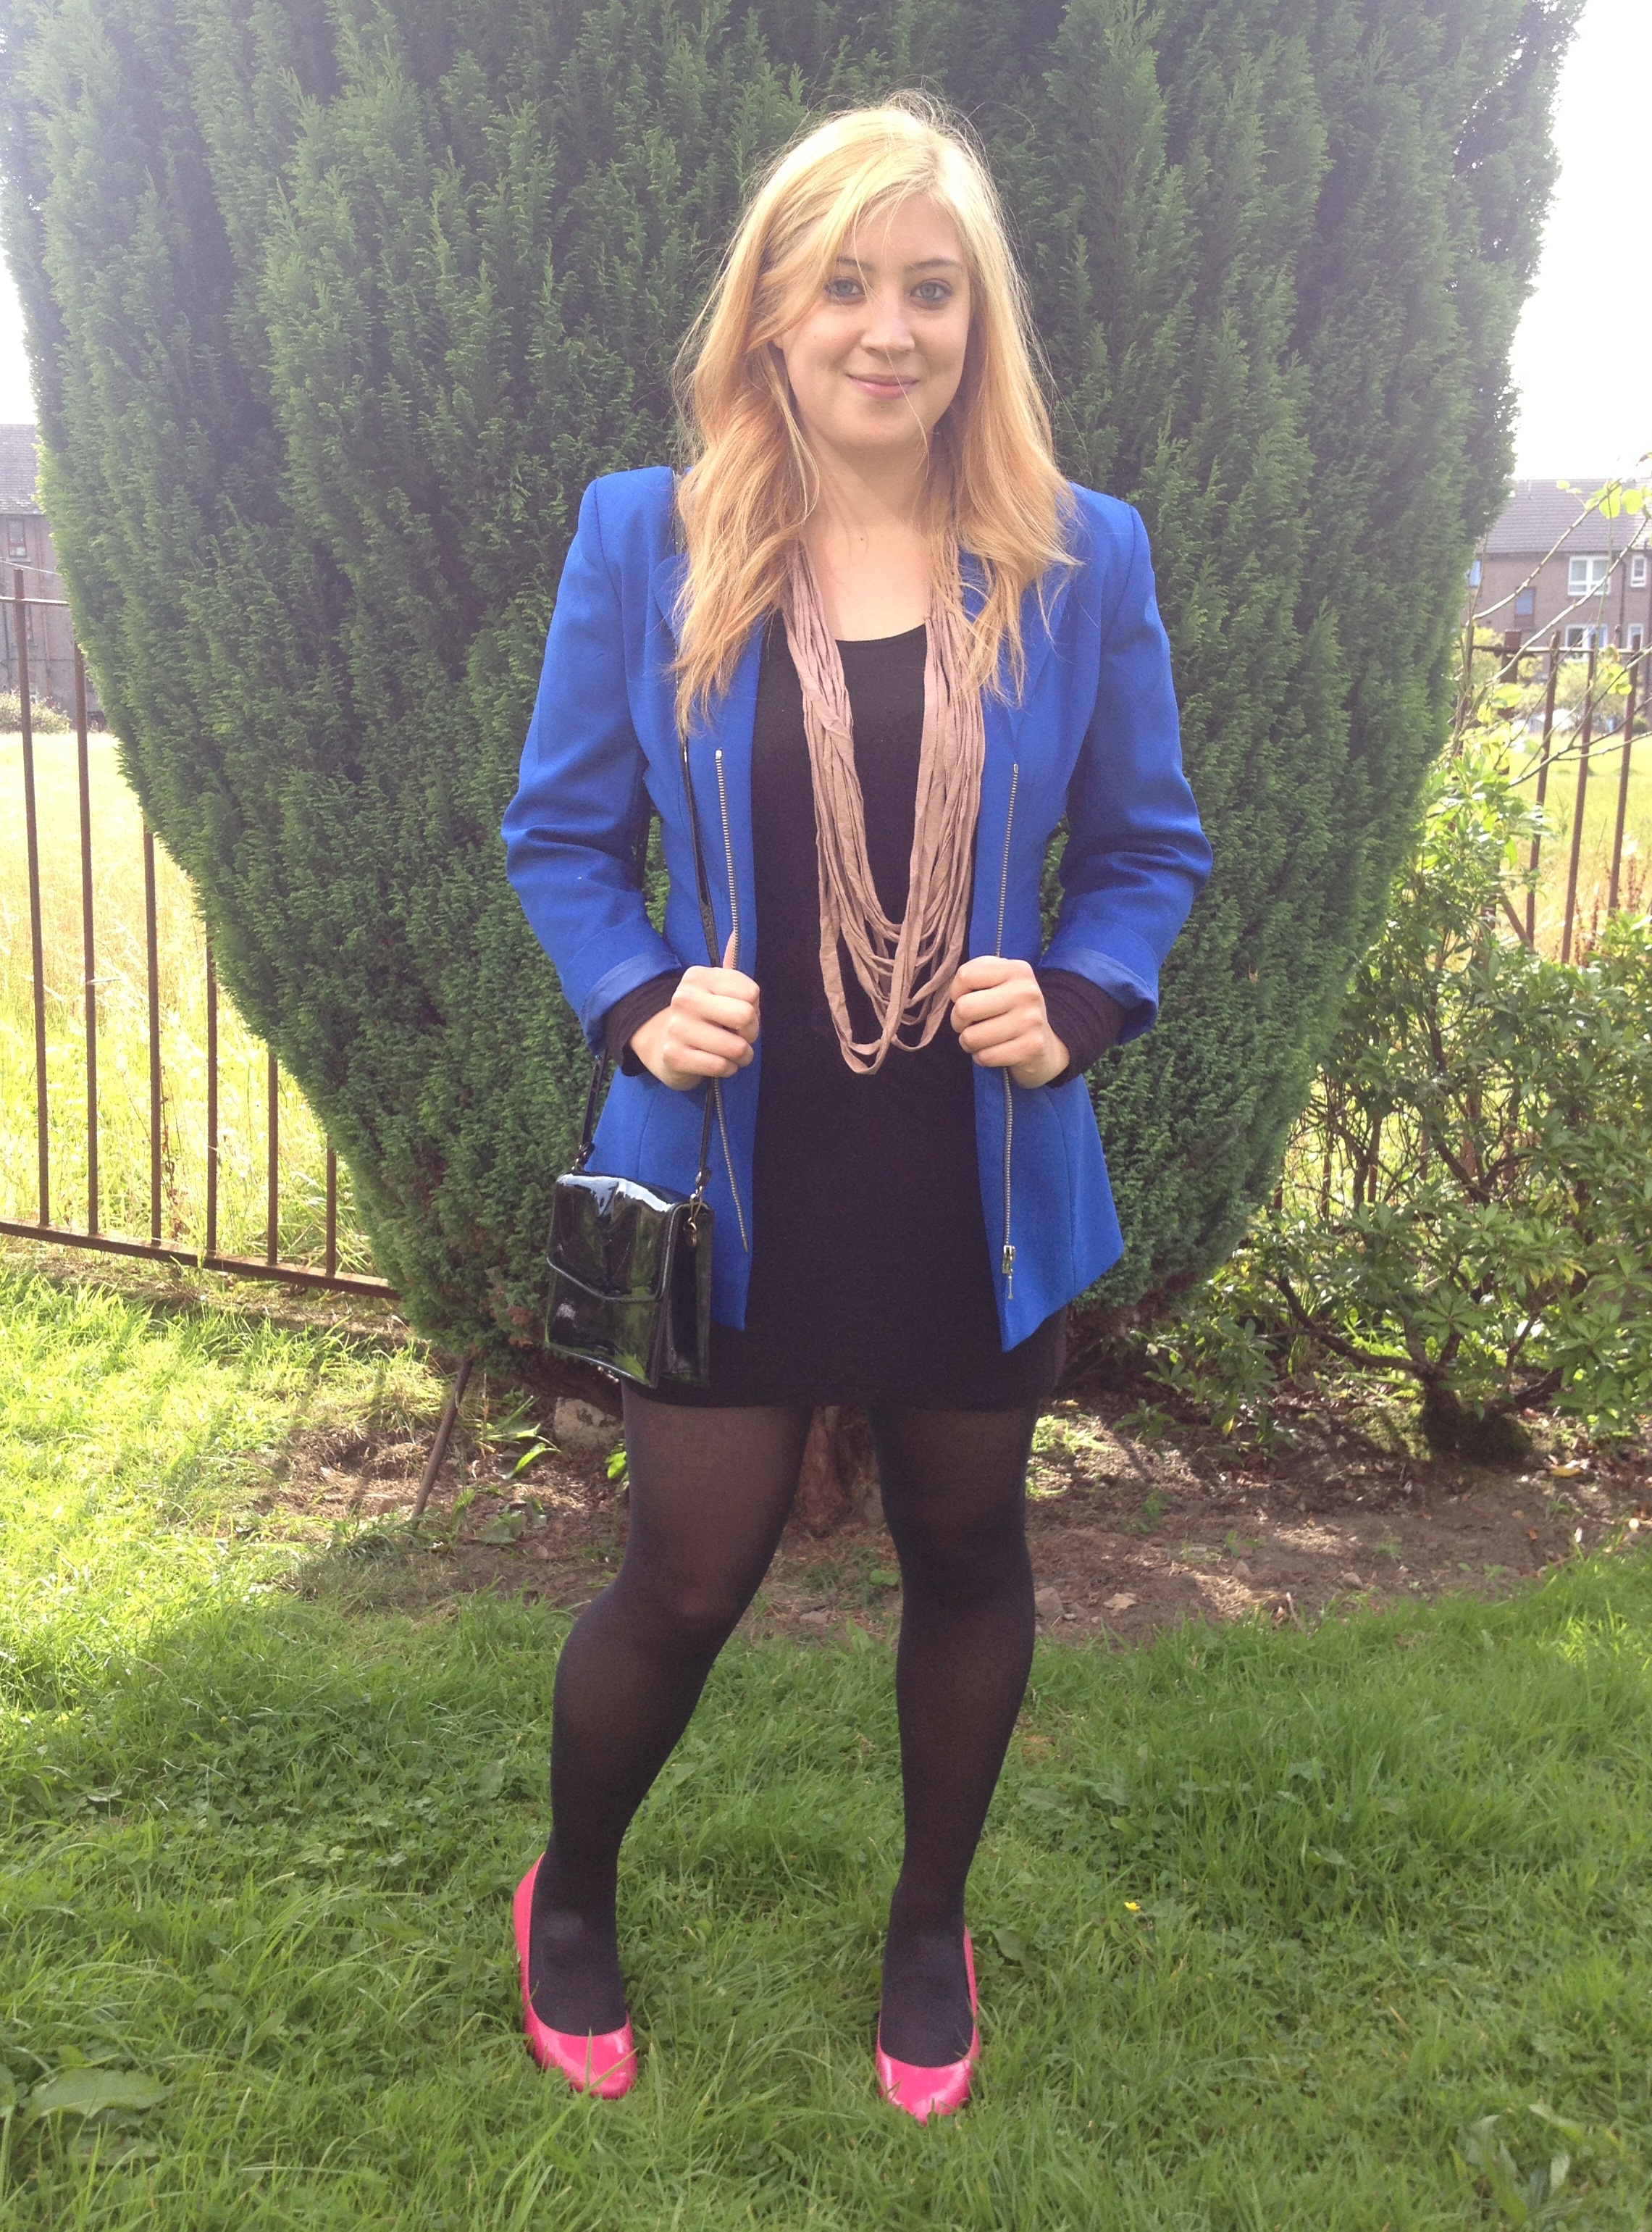 e935fee168d91 How to wear...the blazer - The Trend Herald